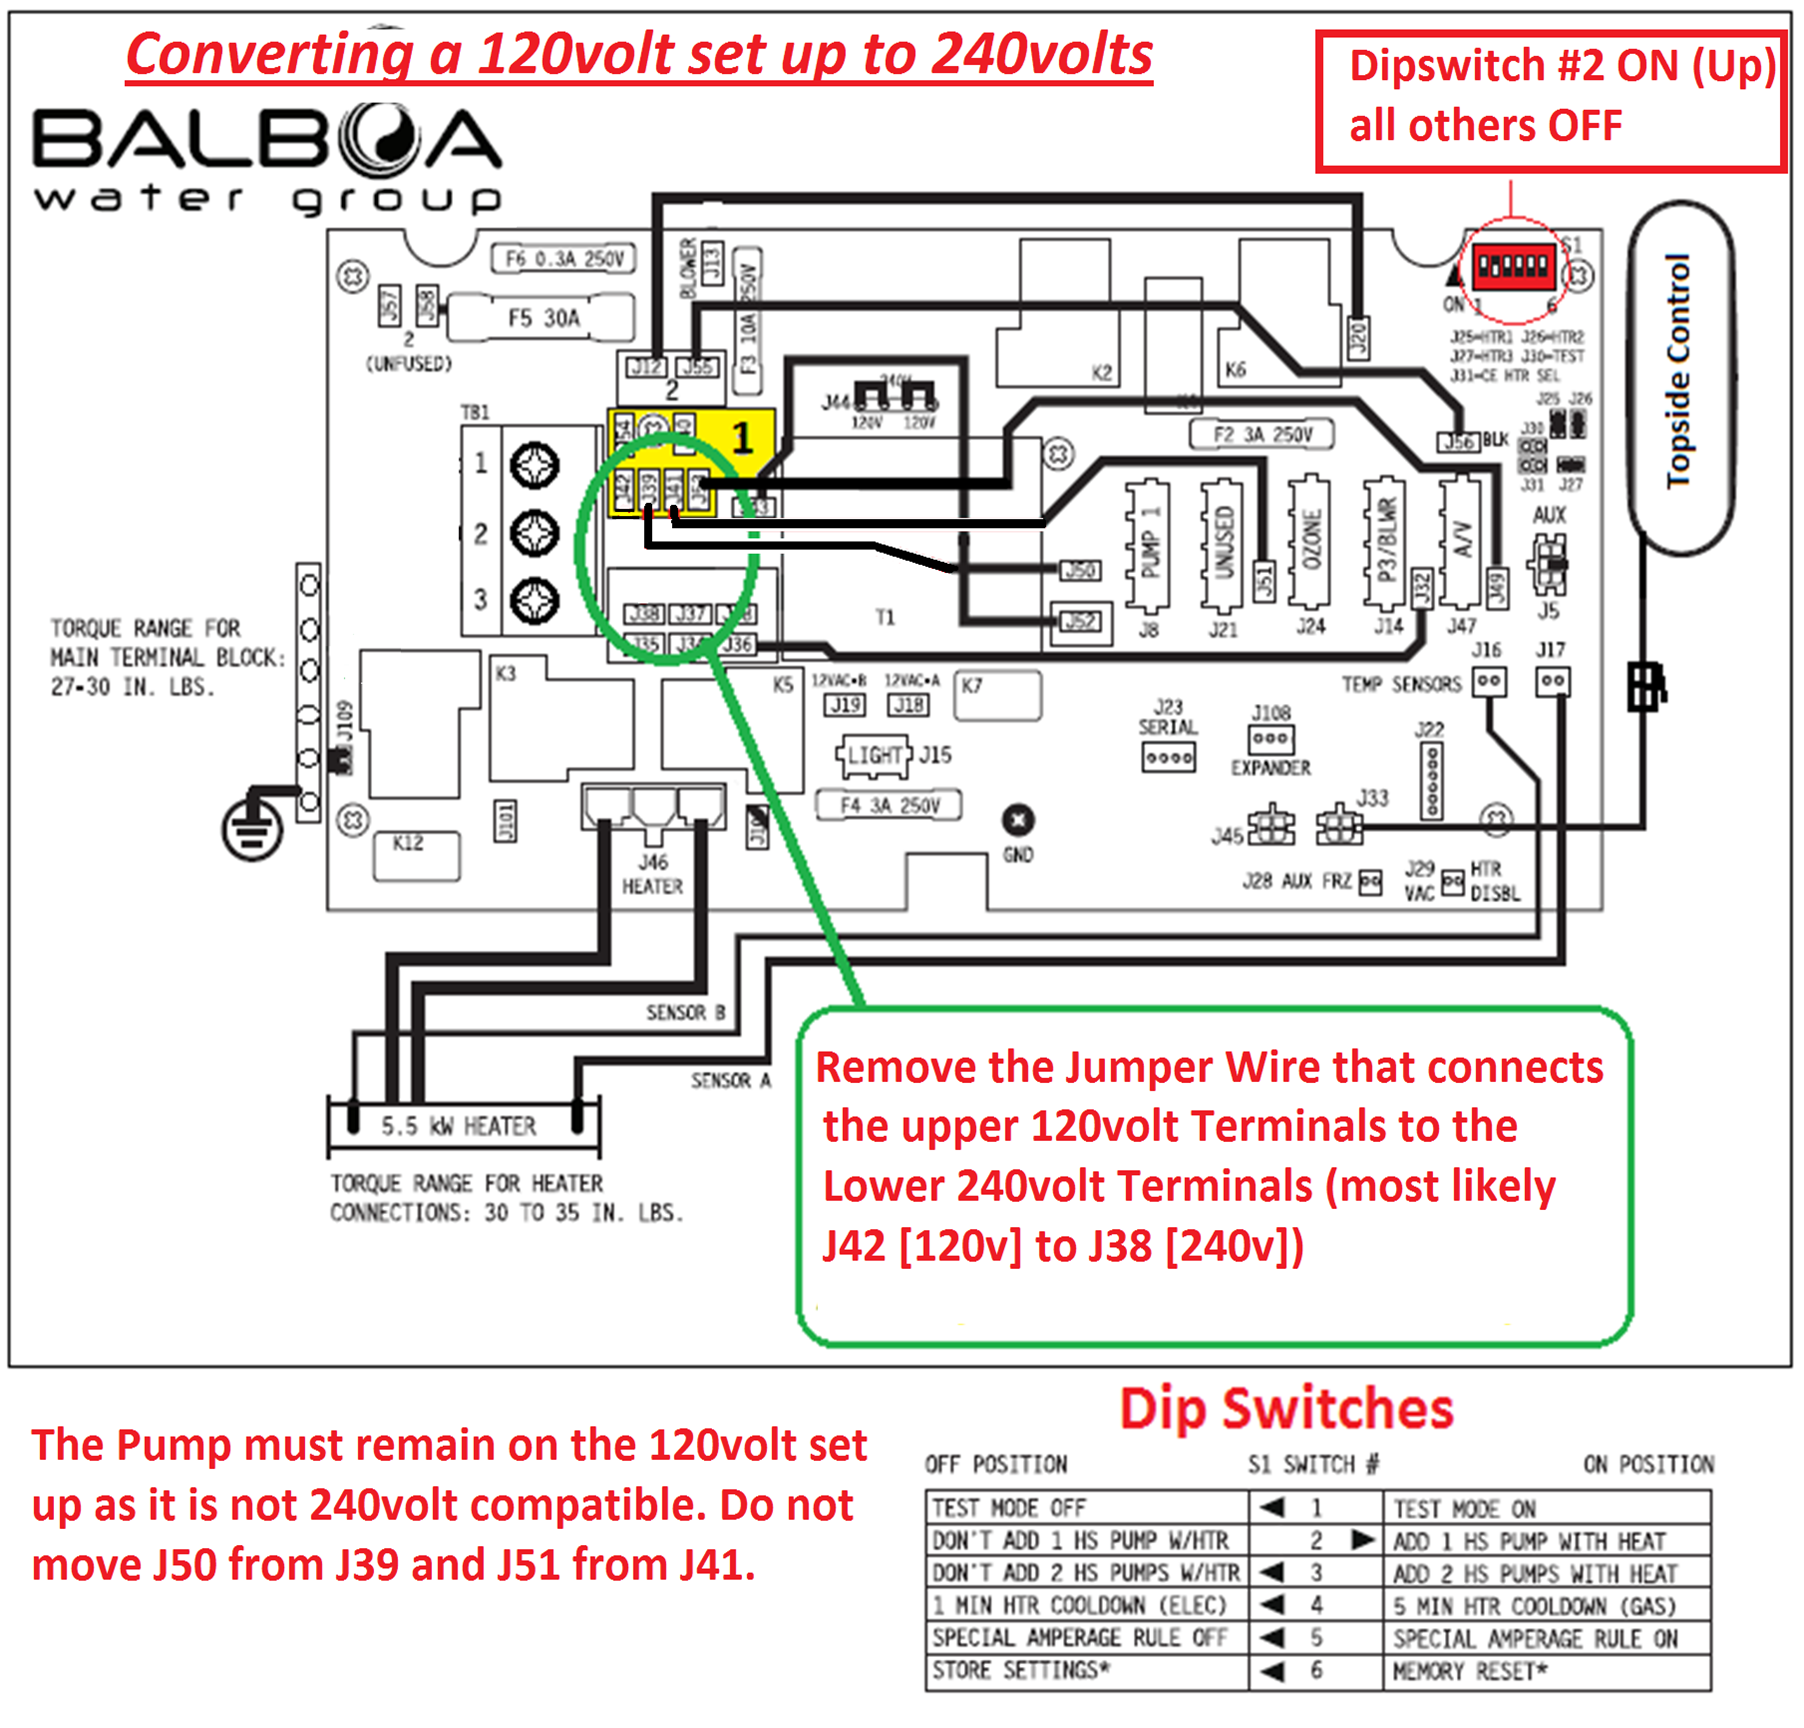 electrical installation converting a 120v balboa bp to 240v hot tub control panel diagram *gfci circuit breaker must be 40a at least but please consult your electrician for further details